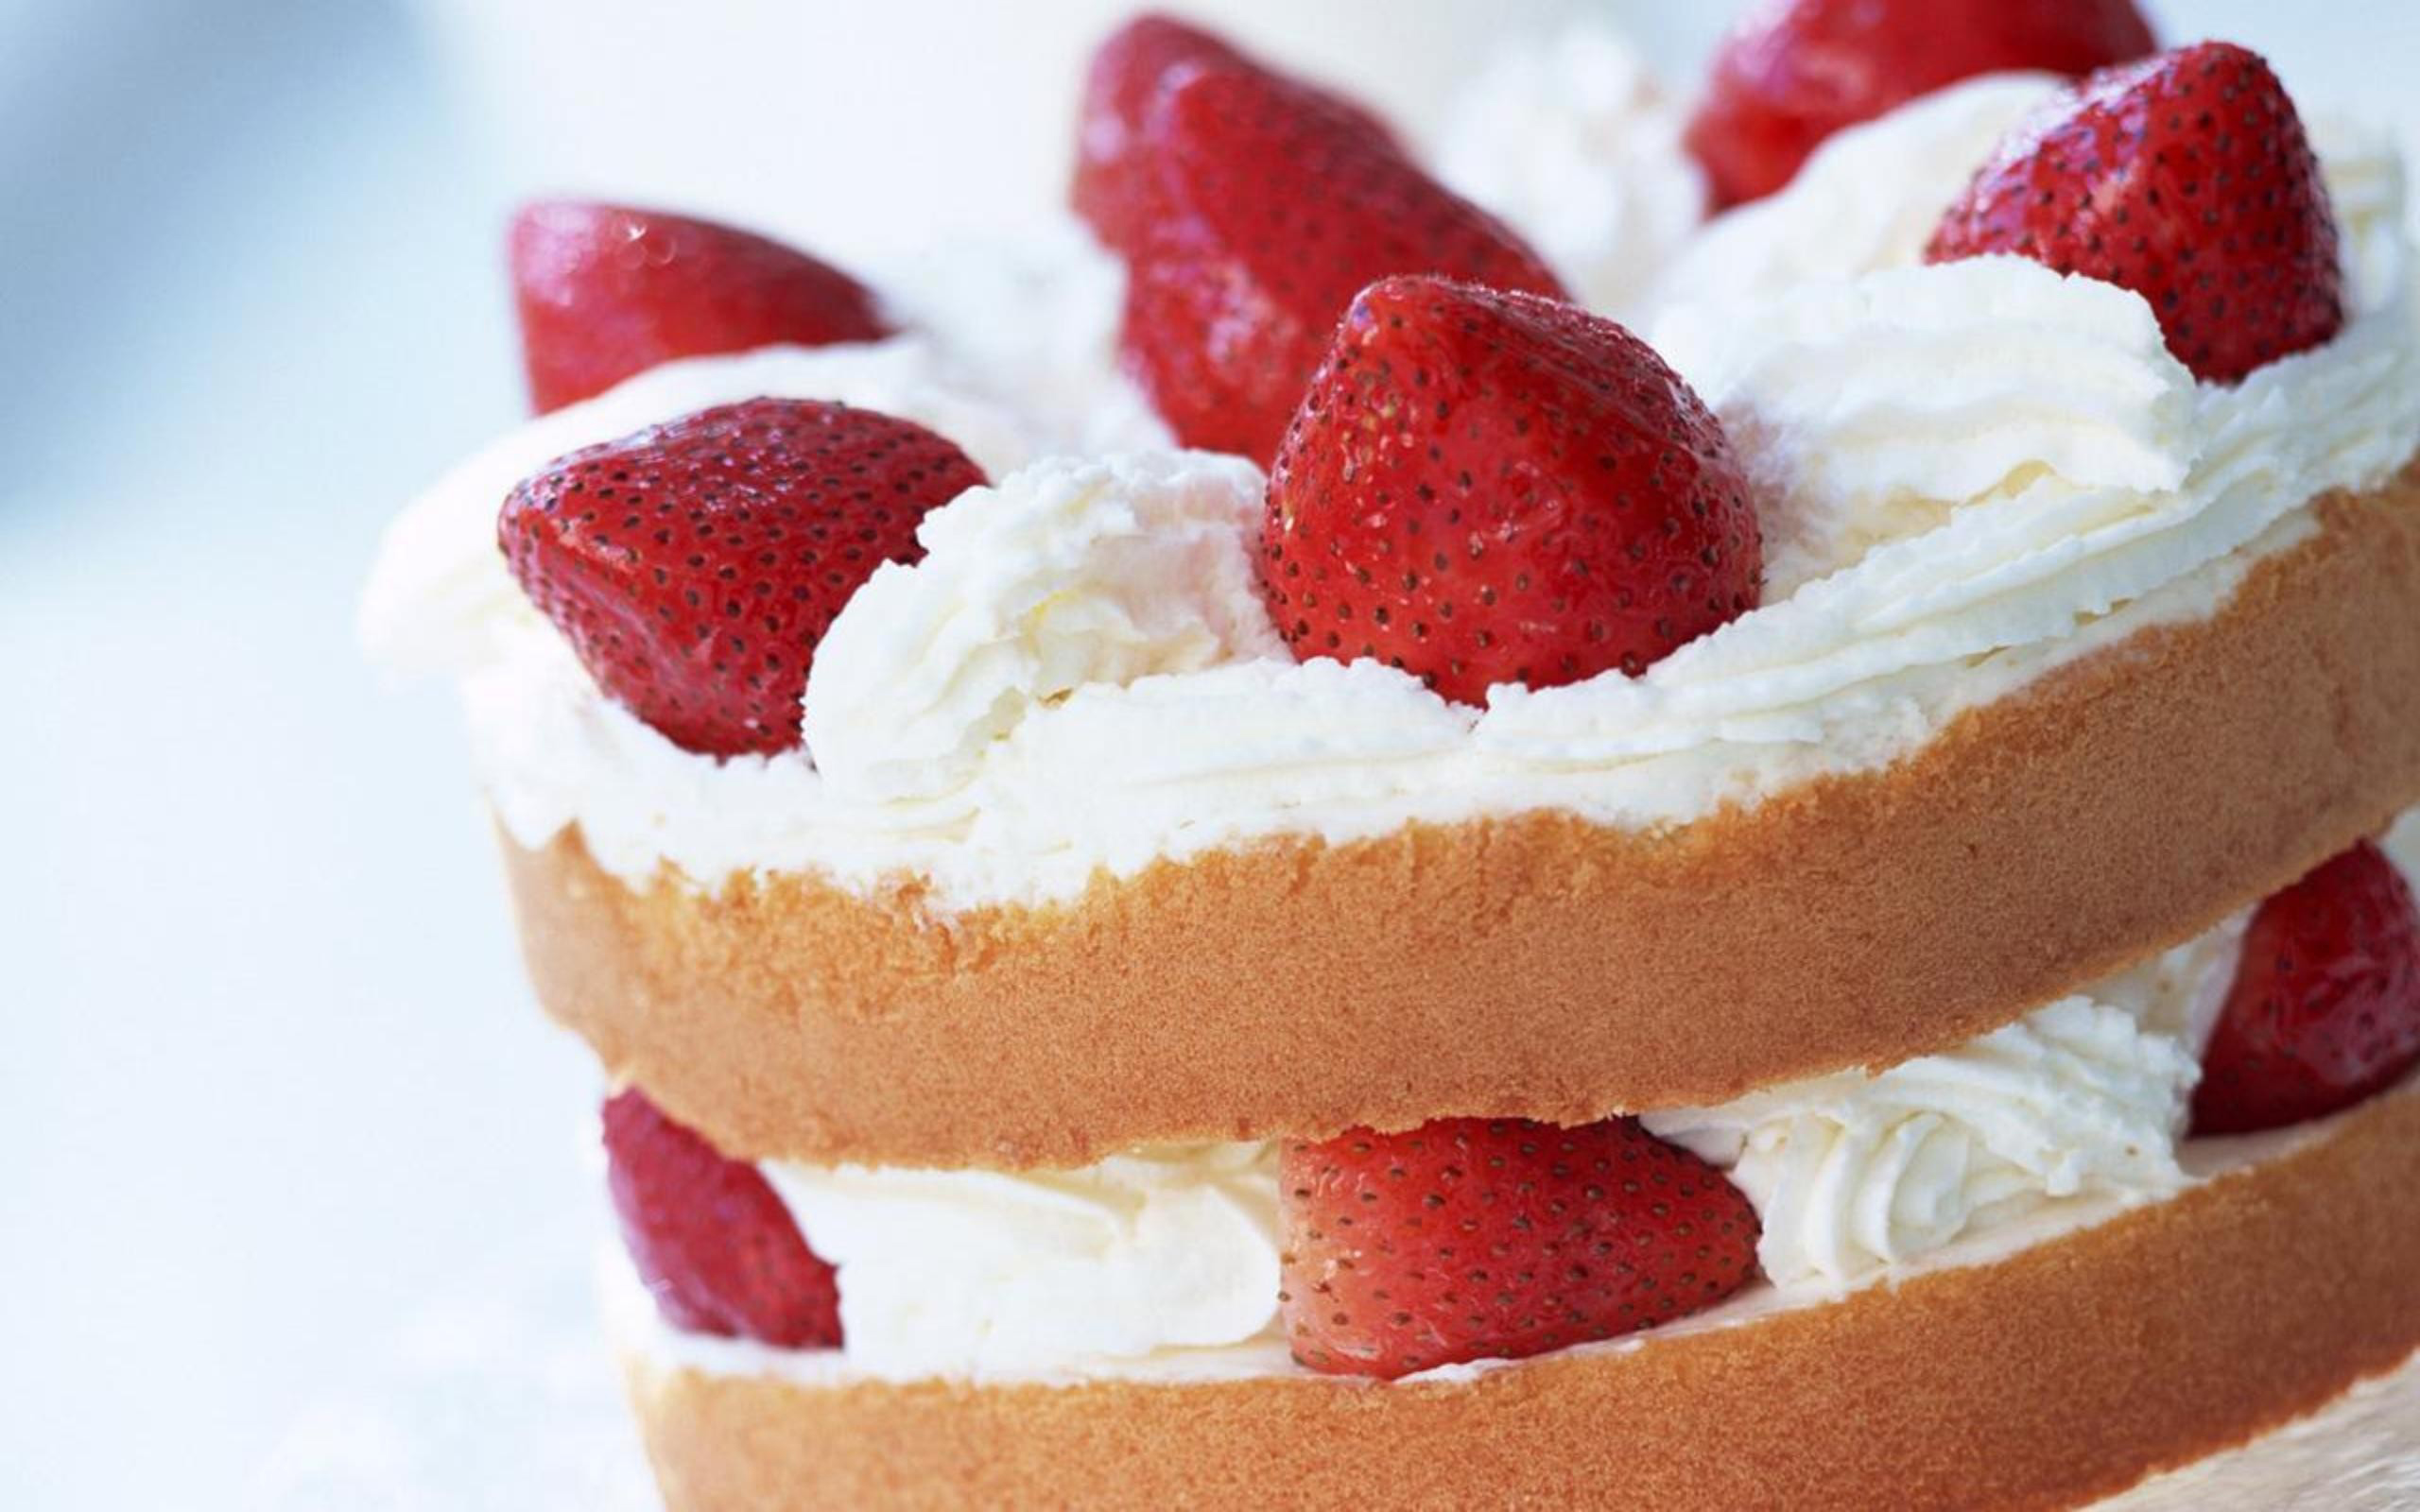 Cake Images Sweets : Cake Full HD Wallpaper and Background 2560x1600 ID:346408